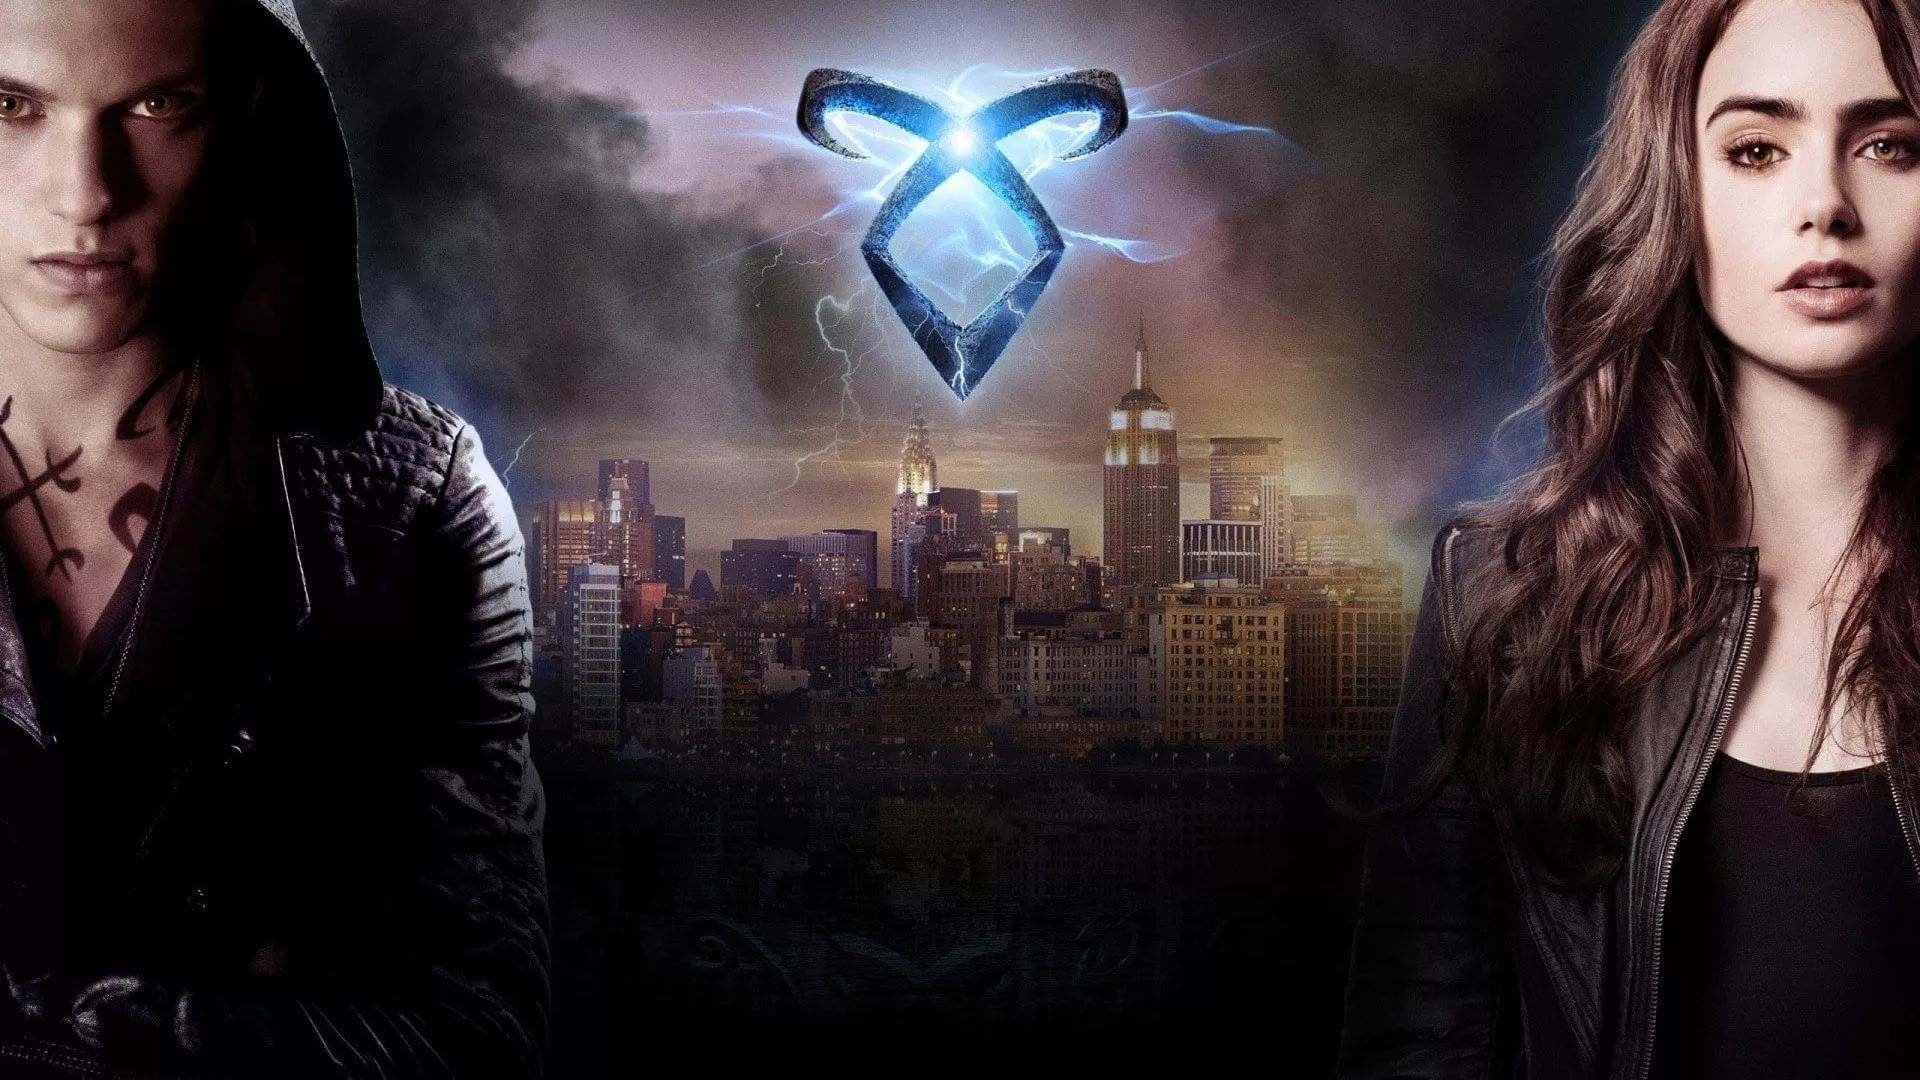 Shadowhunters Wallpapers 22 Images Wallpaperboat